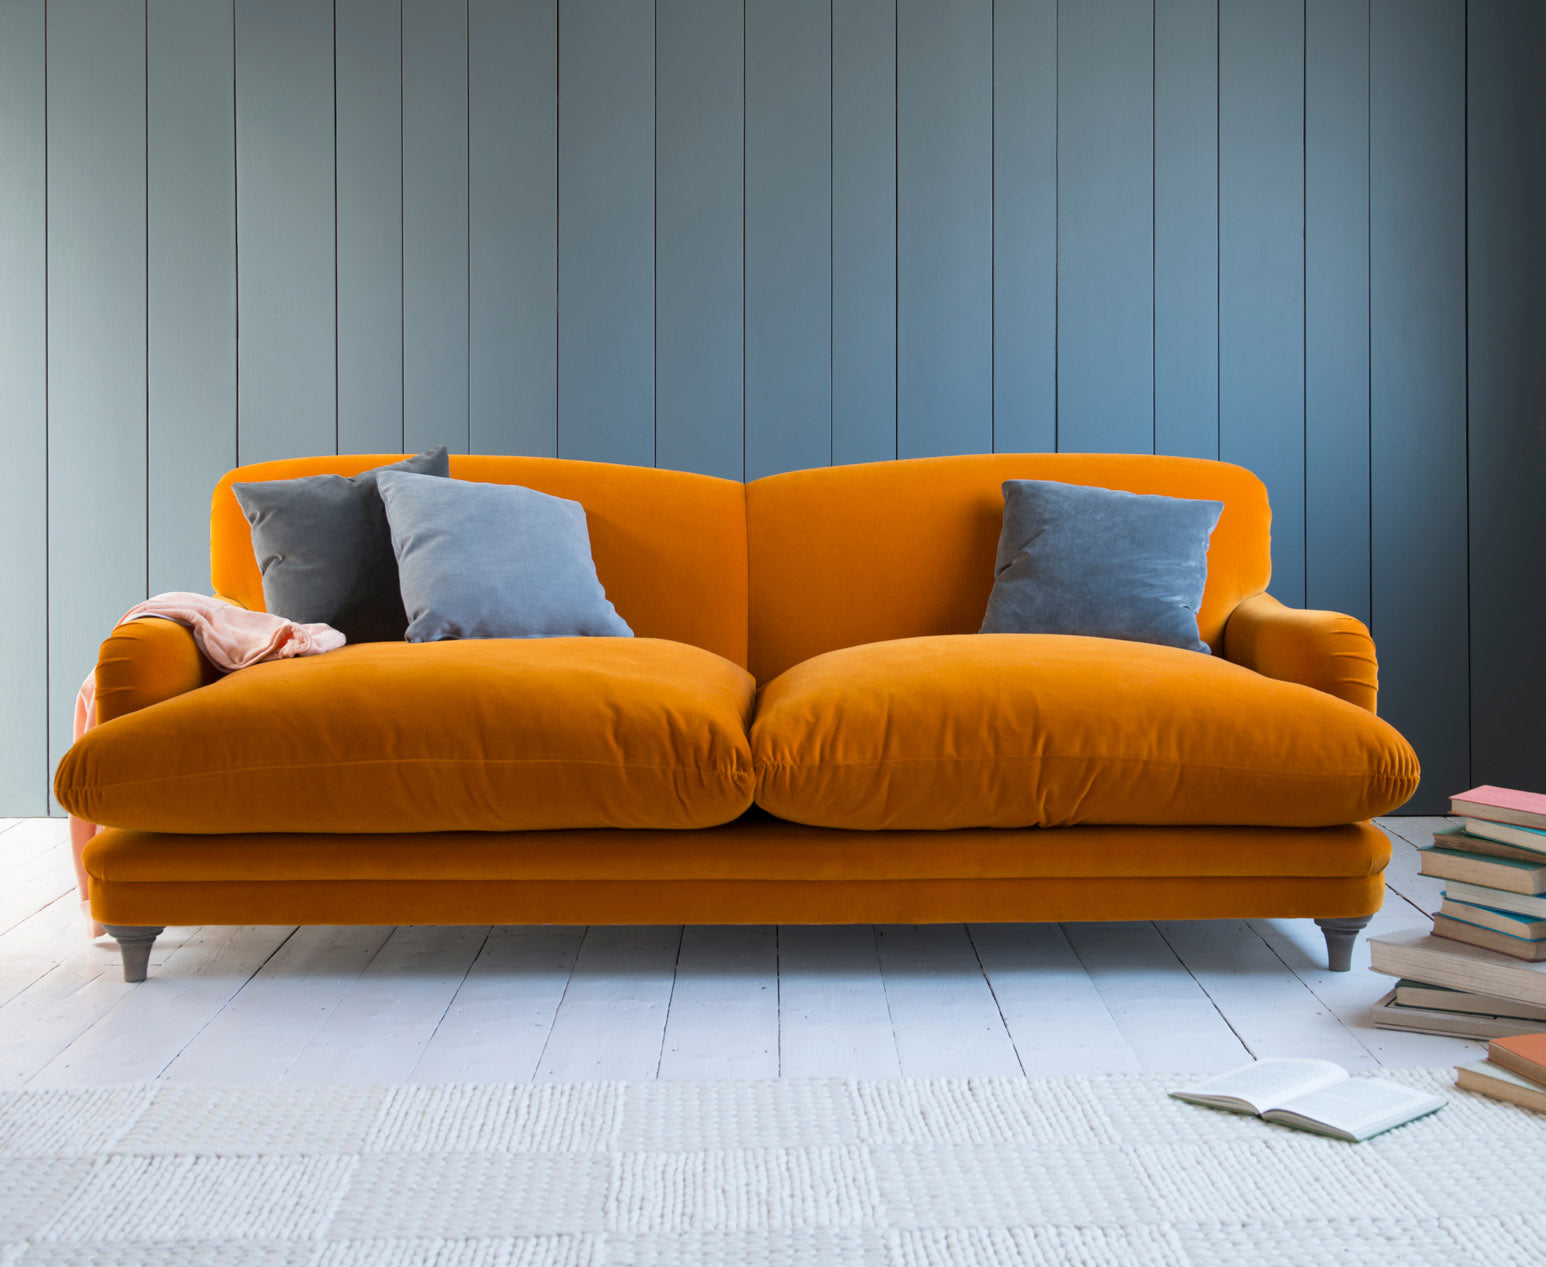 Loaf burnt orange pudding sofa with blue combination cushions